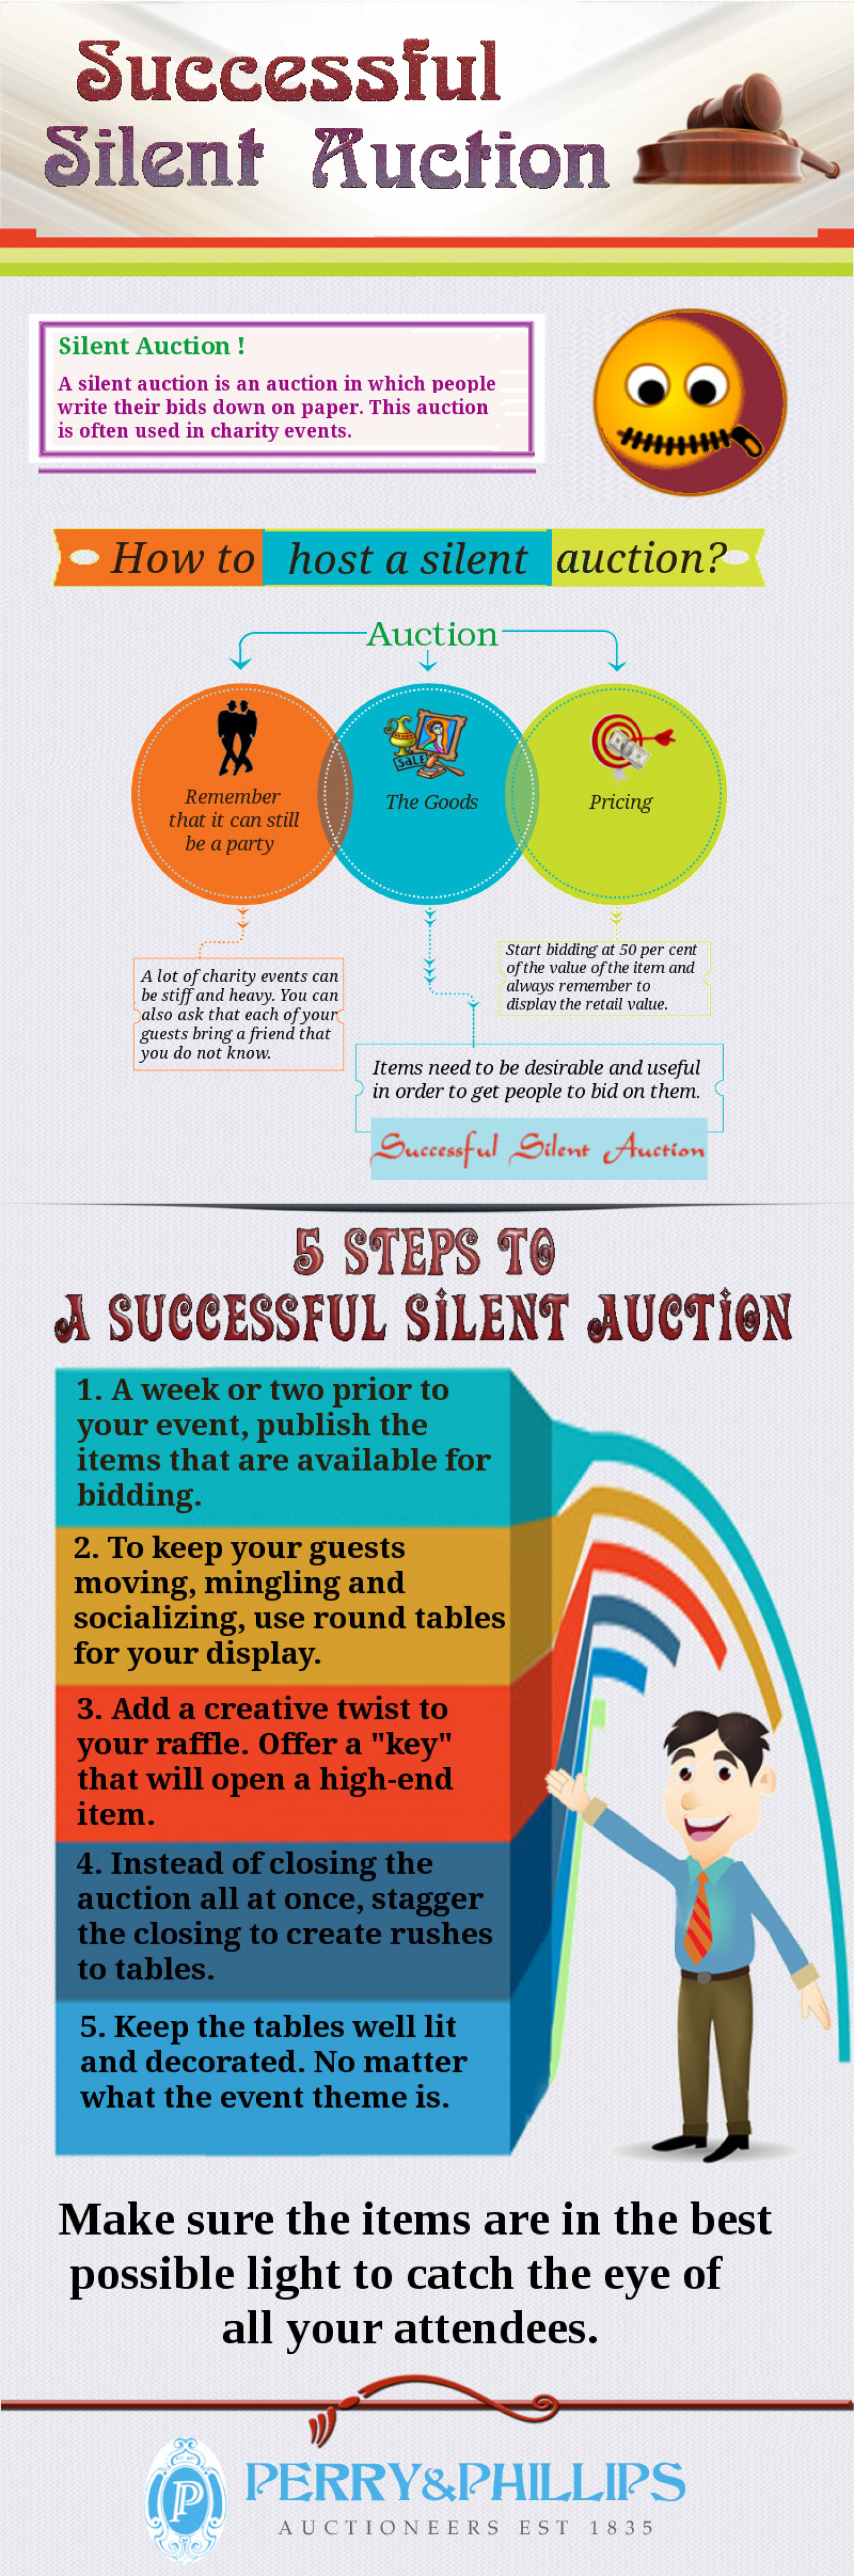 Successful Silent Auction Infographic